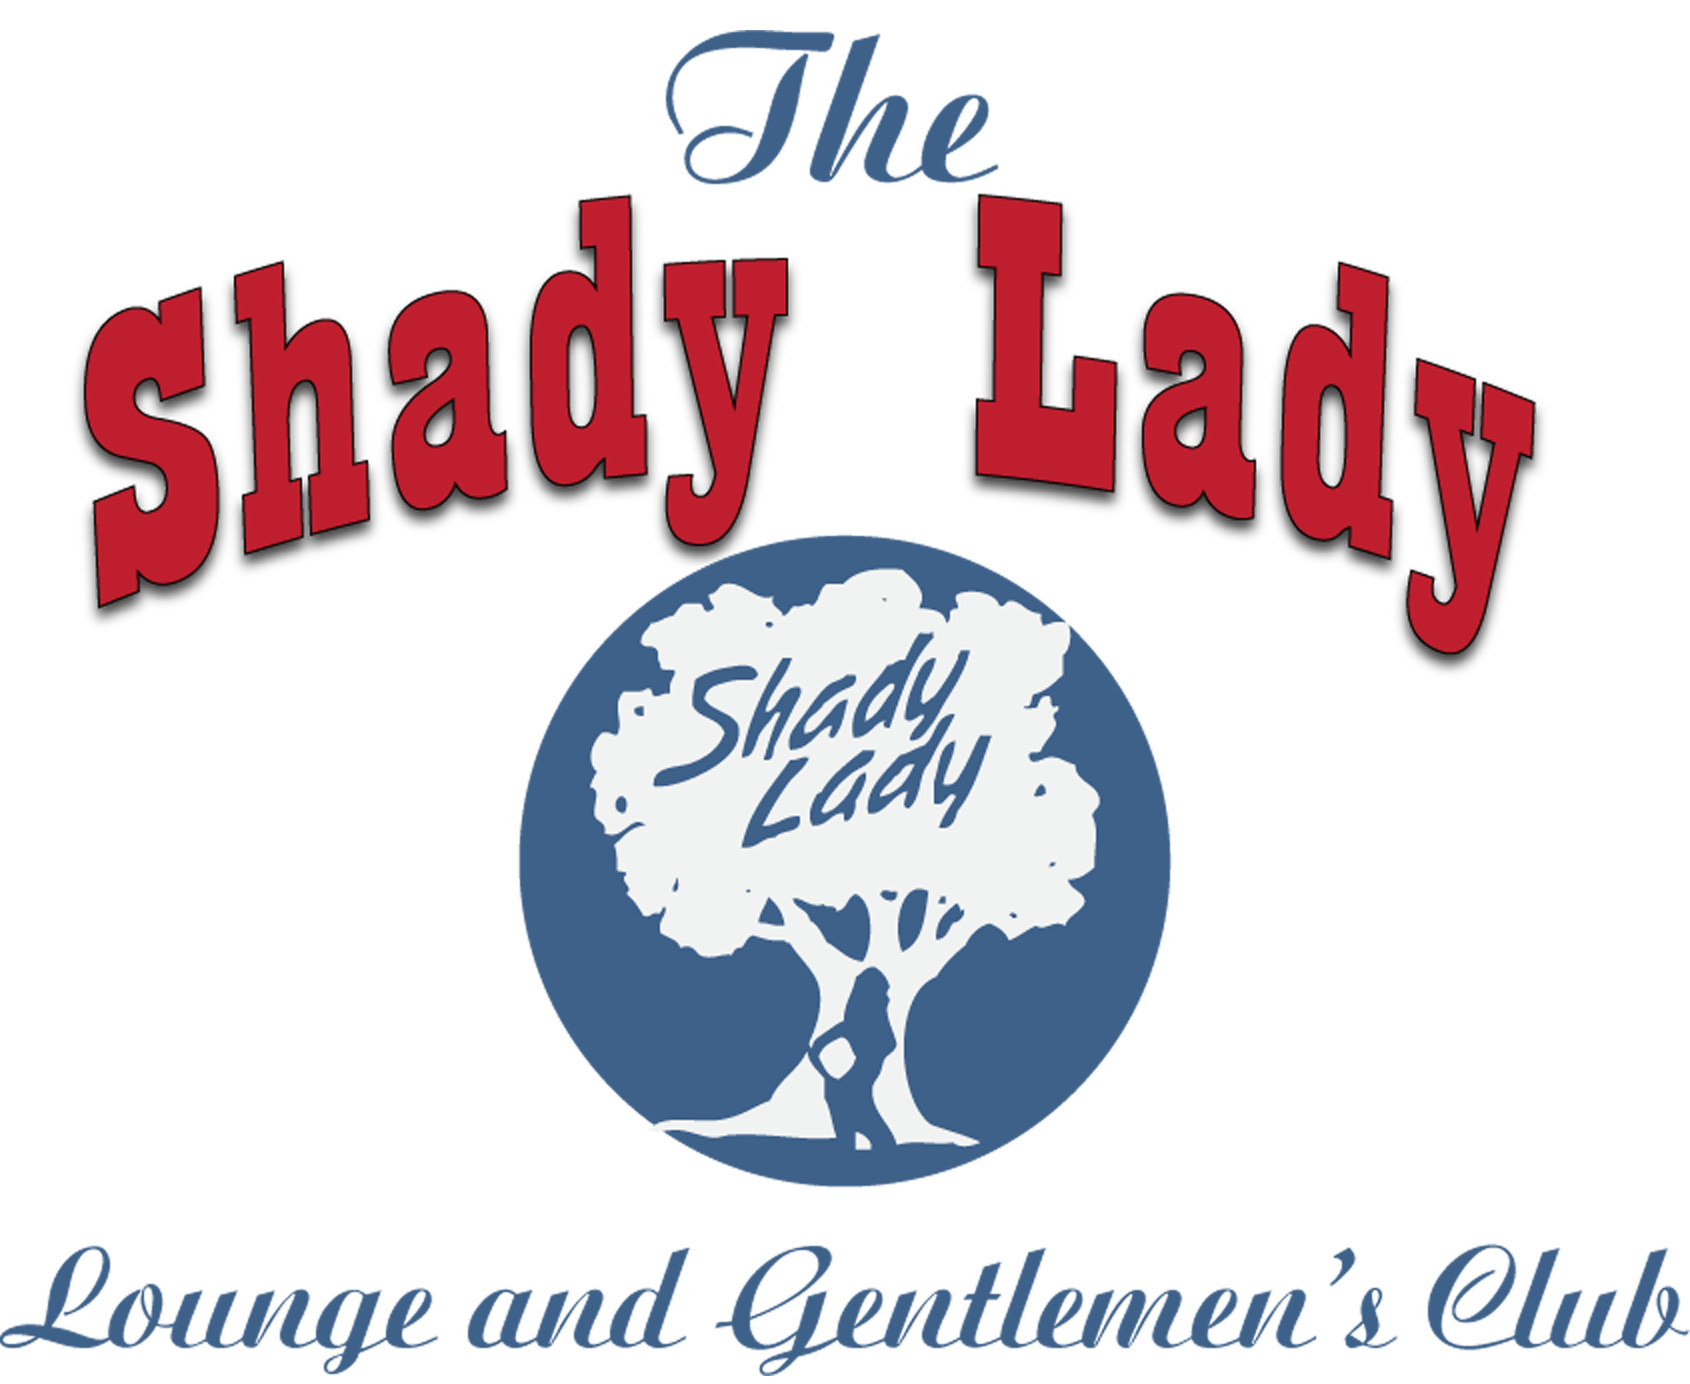 The Shady Lady Lounge